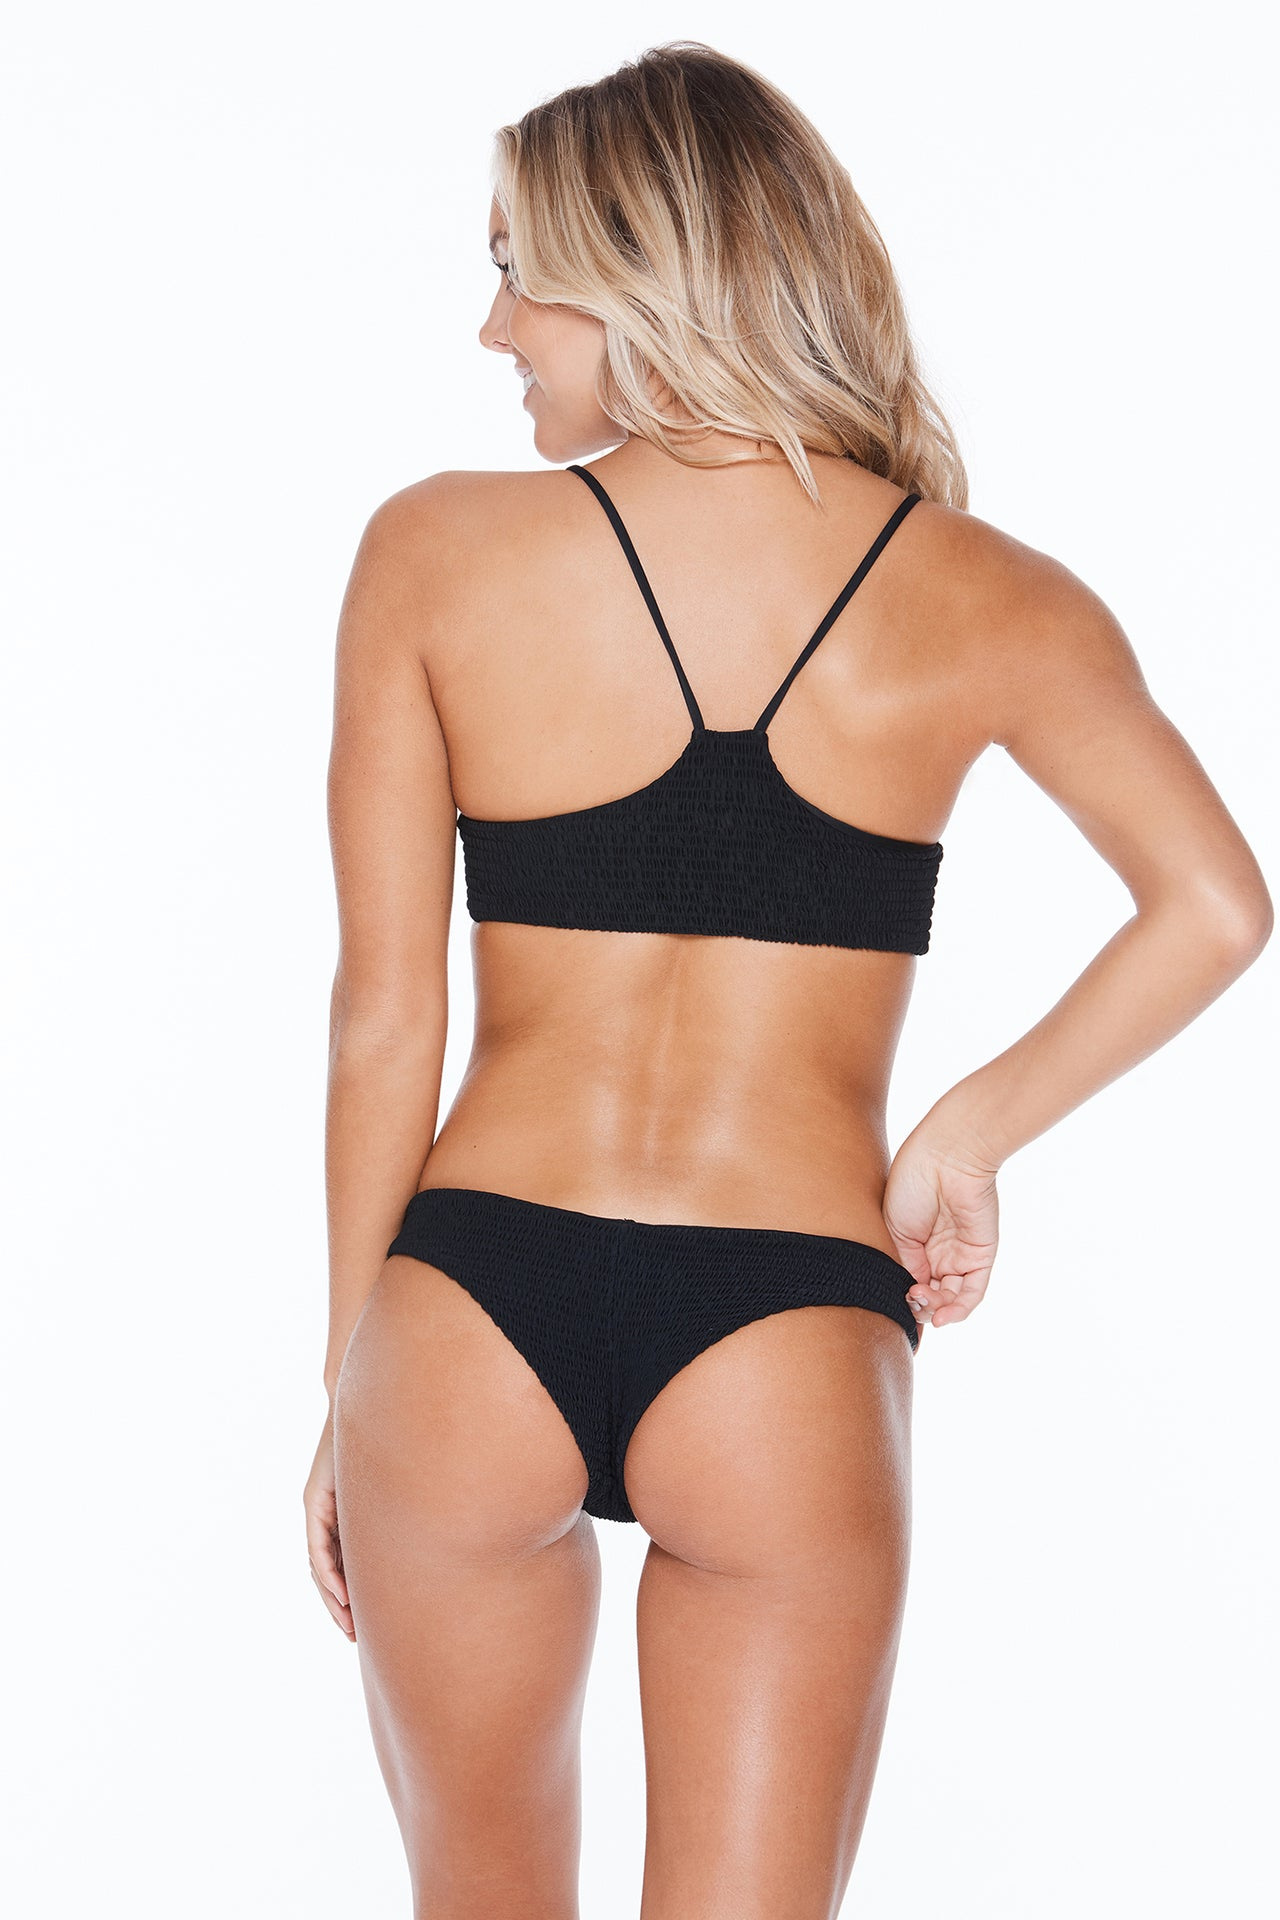 Gili Girl Bottom - Black